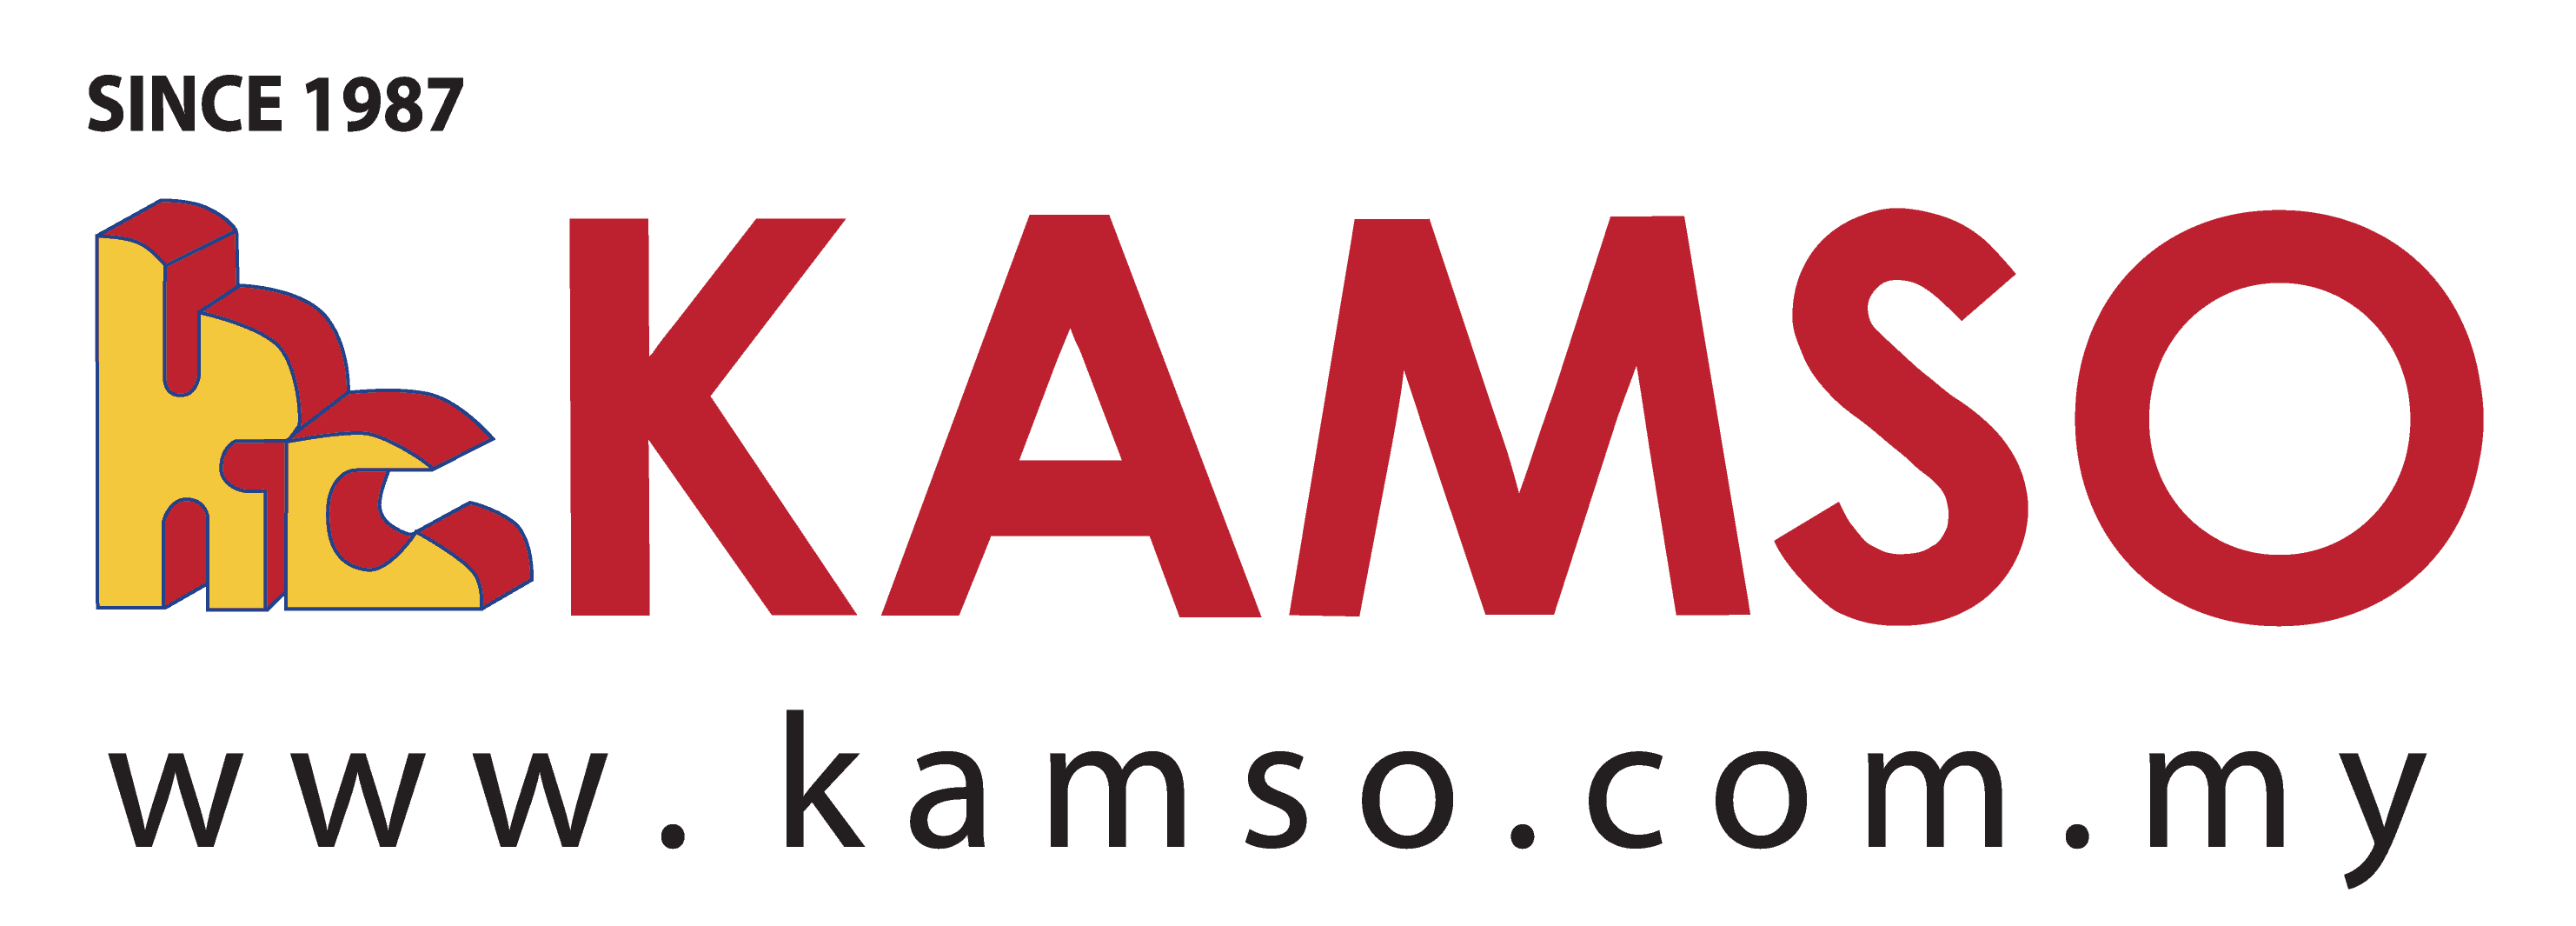 KAMSO Property Development